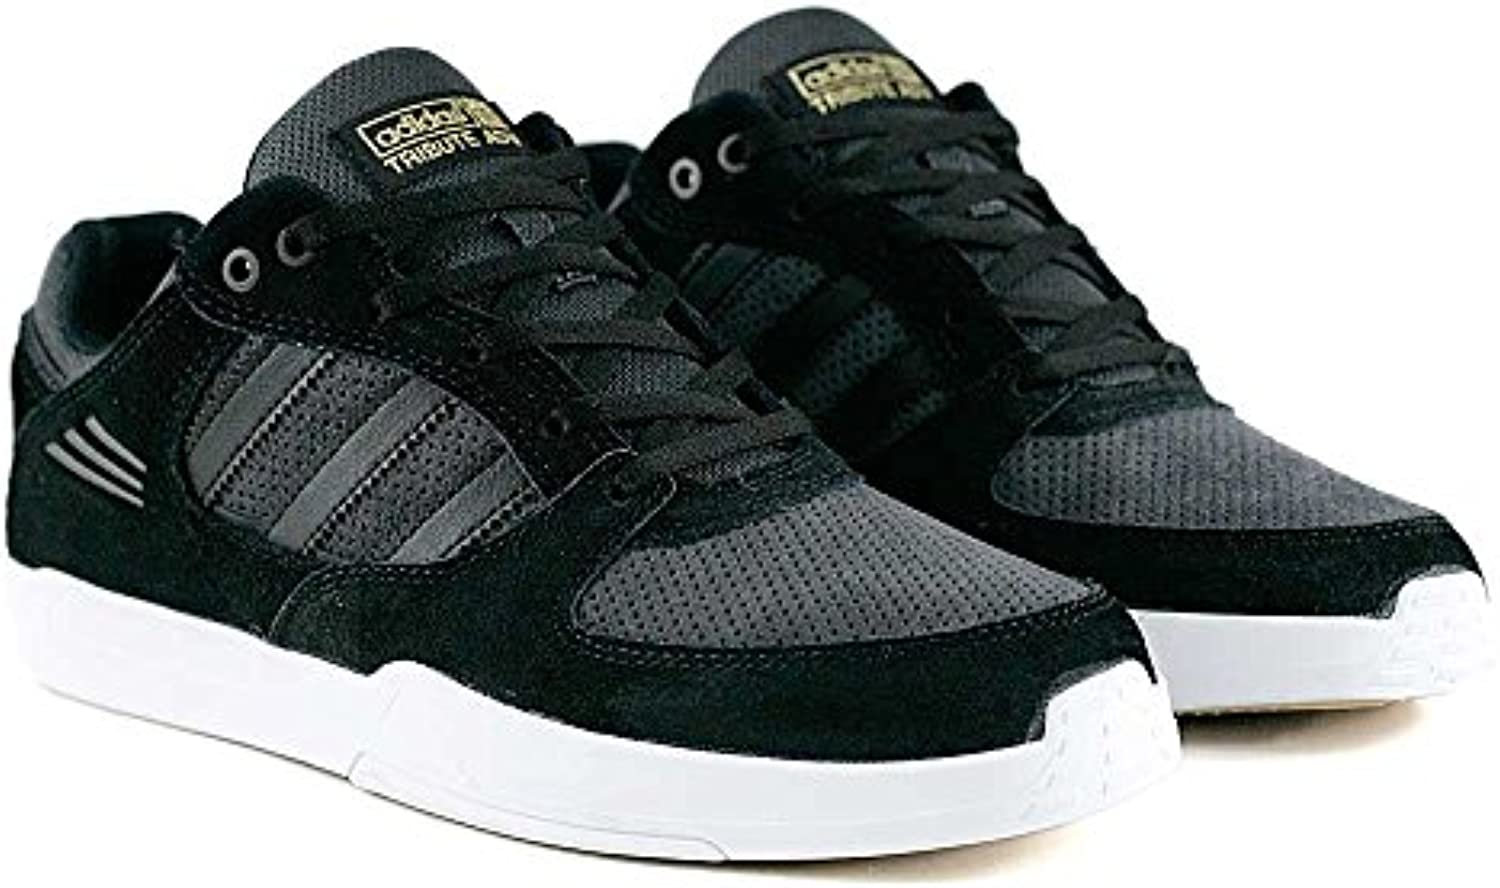 Adidas Tribute ADV, Tan Core nero Running bianca FTW FTW FTW | Ricca consegna puntuale  5964a4